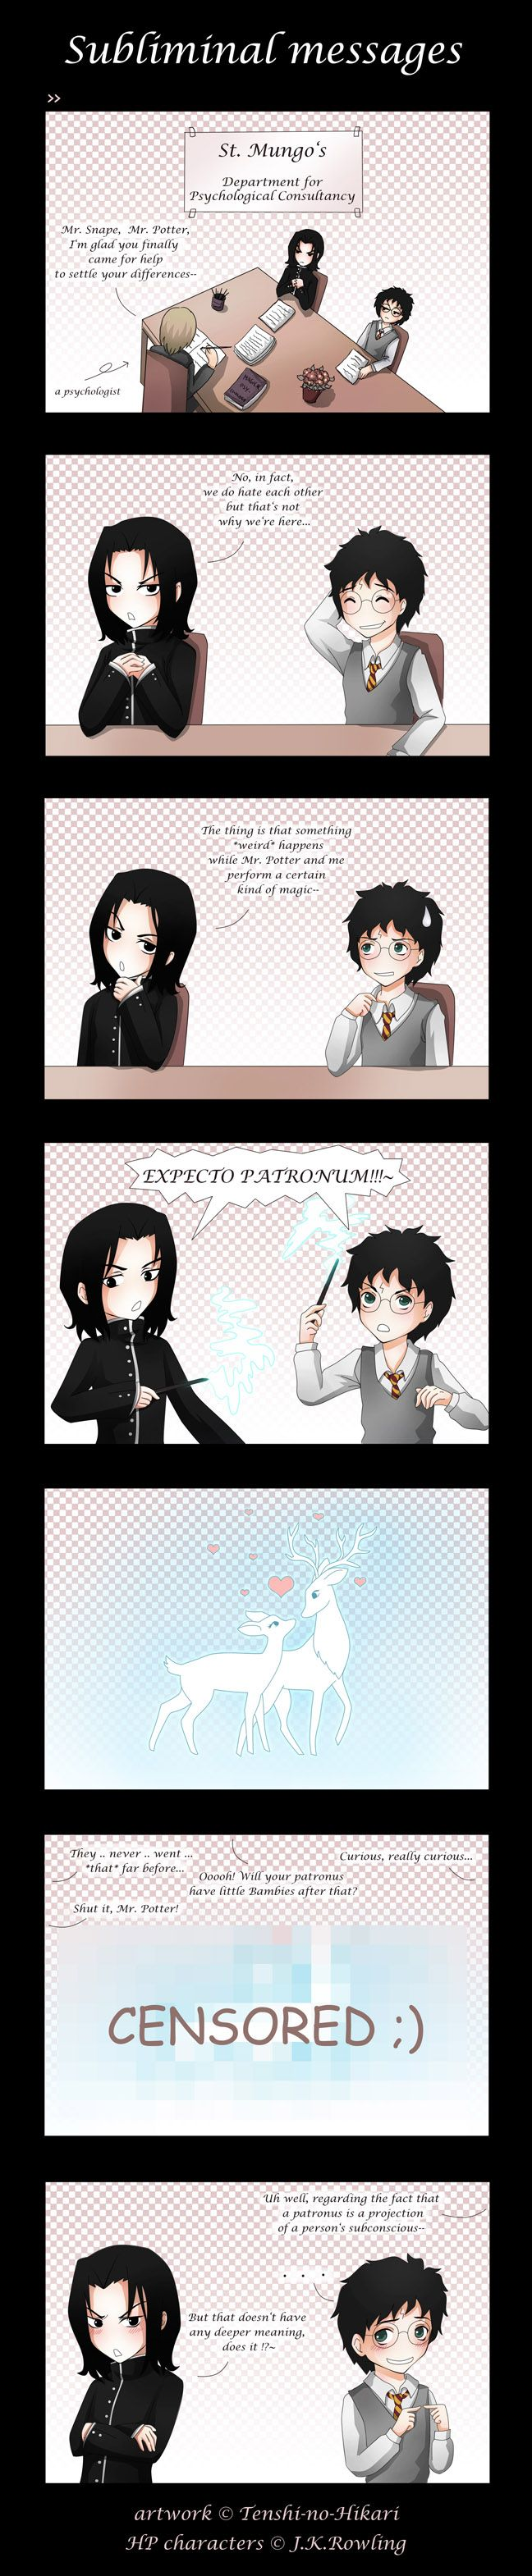 HP - Severus Snape and Harry Potter, expecto patronus - Subliminal messages by Tenshi-no-Hikari